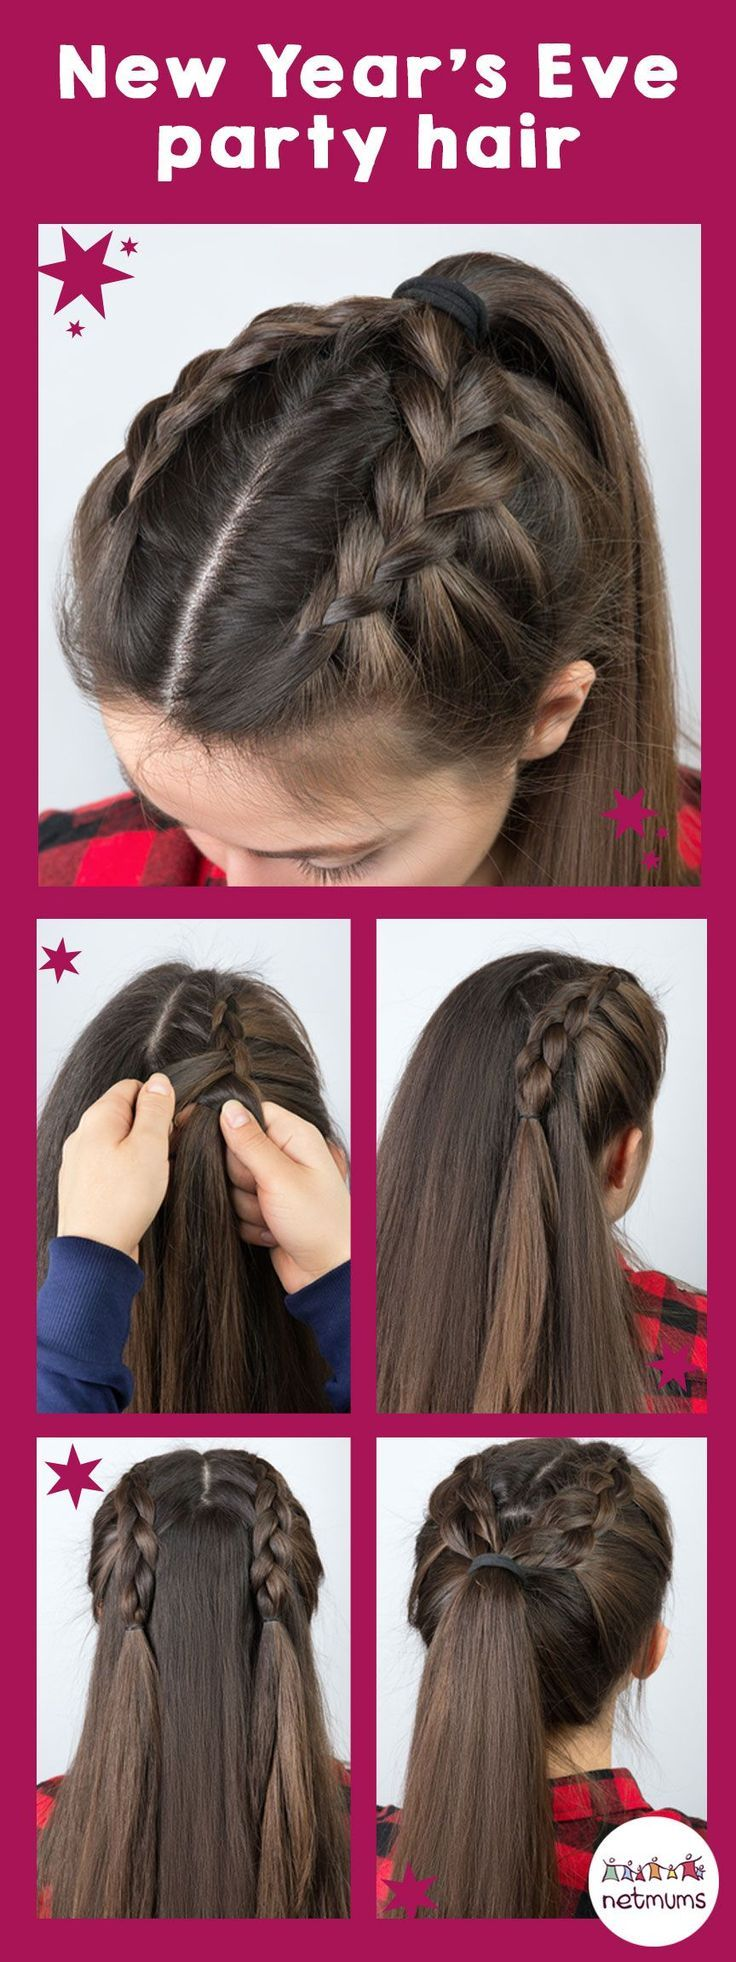 New Year's Eve hair ideas. If you're looking for hair ideas for New Year